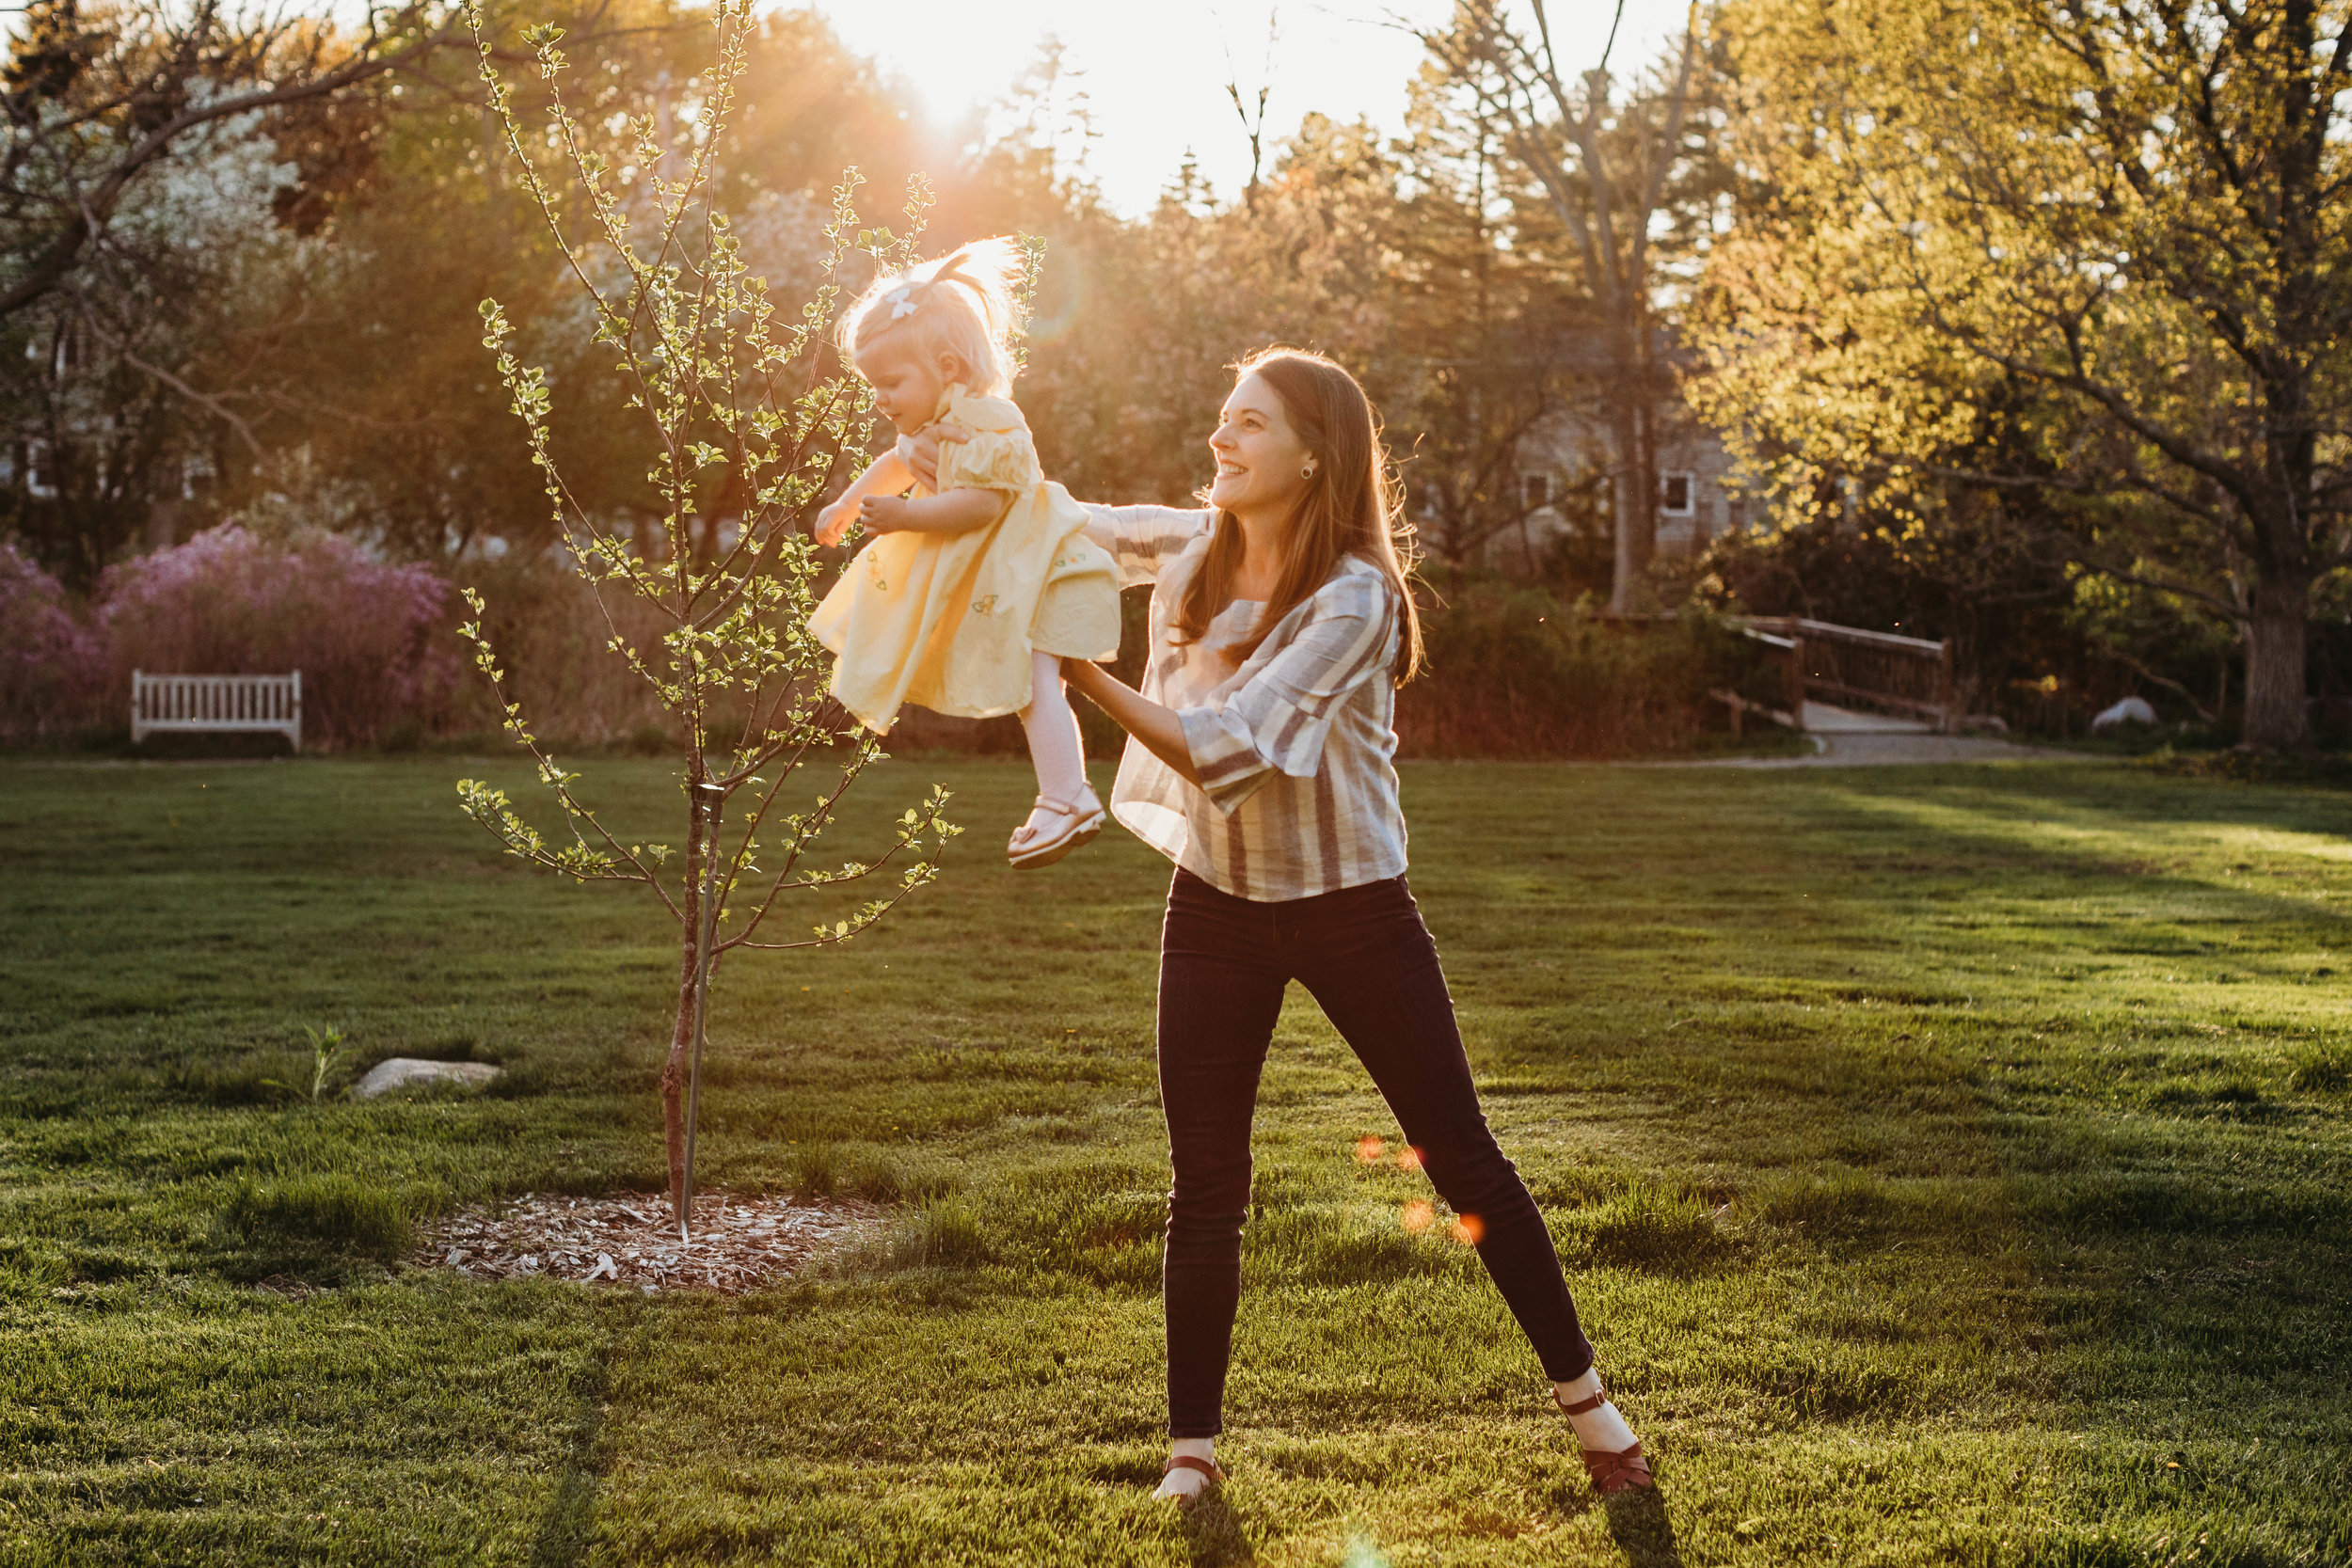 Boston family photographer Joy LeDuc. Golden hour mother-daughter photos in Acton, Massachusetts. Lifestyle photography for children, families and pets.